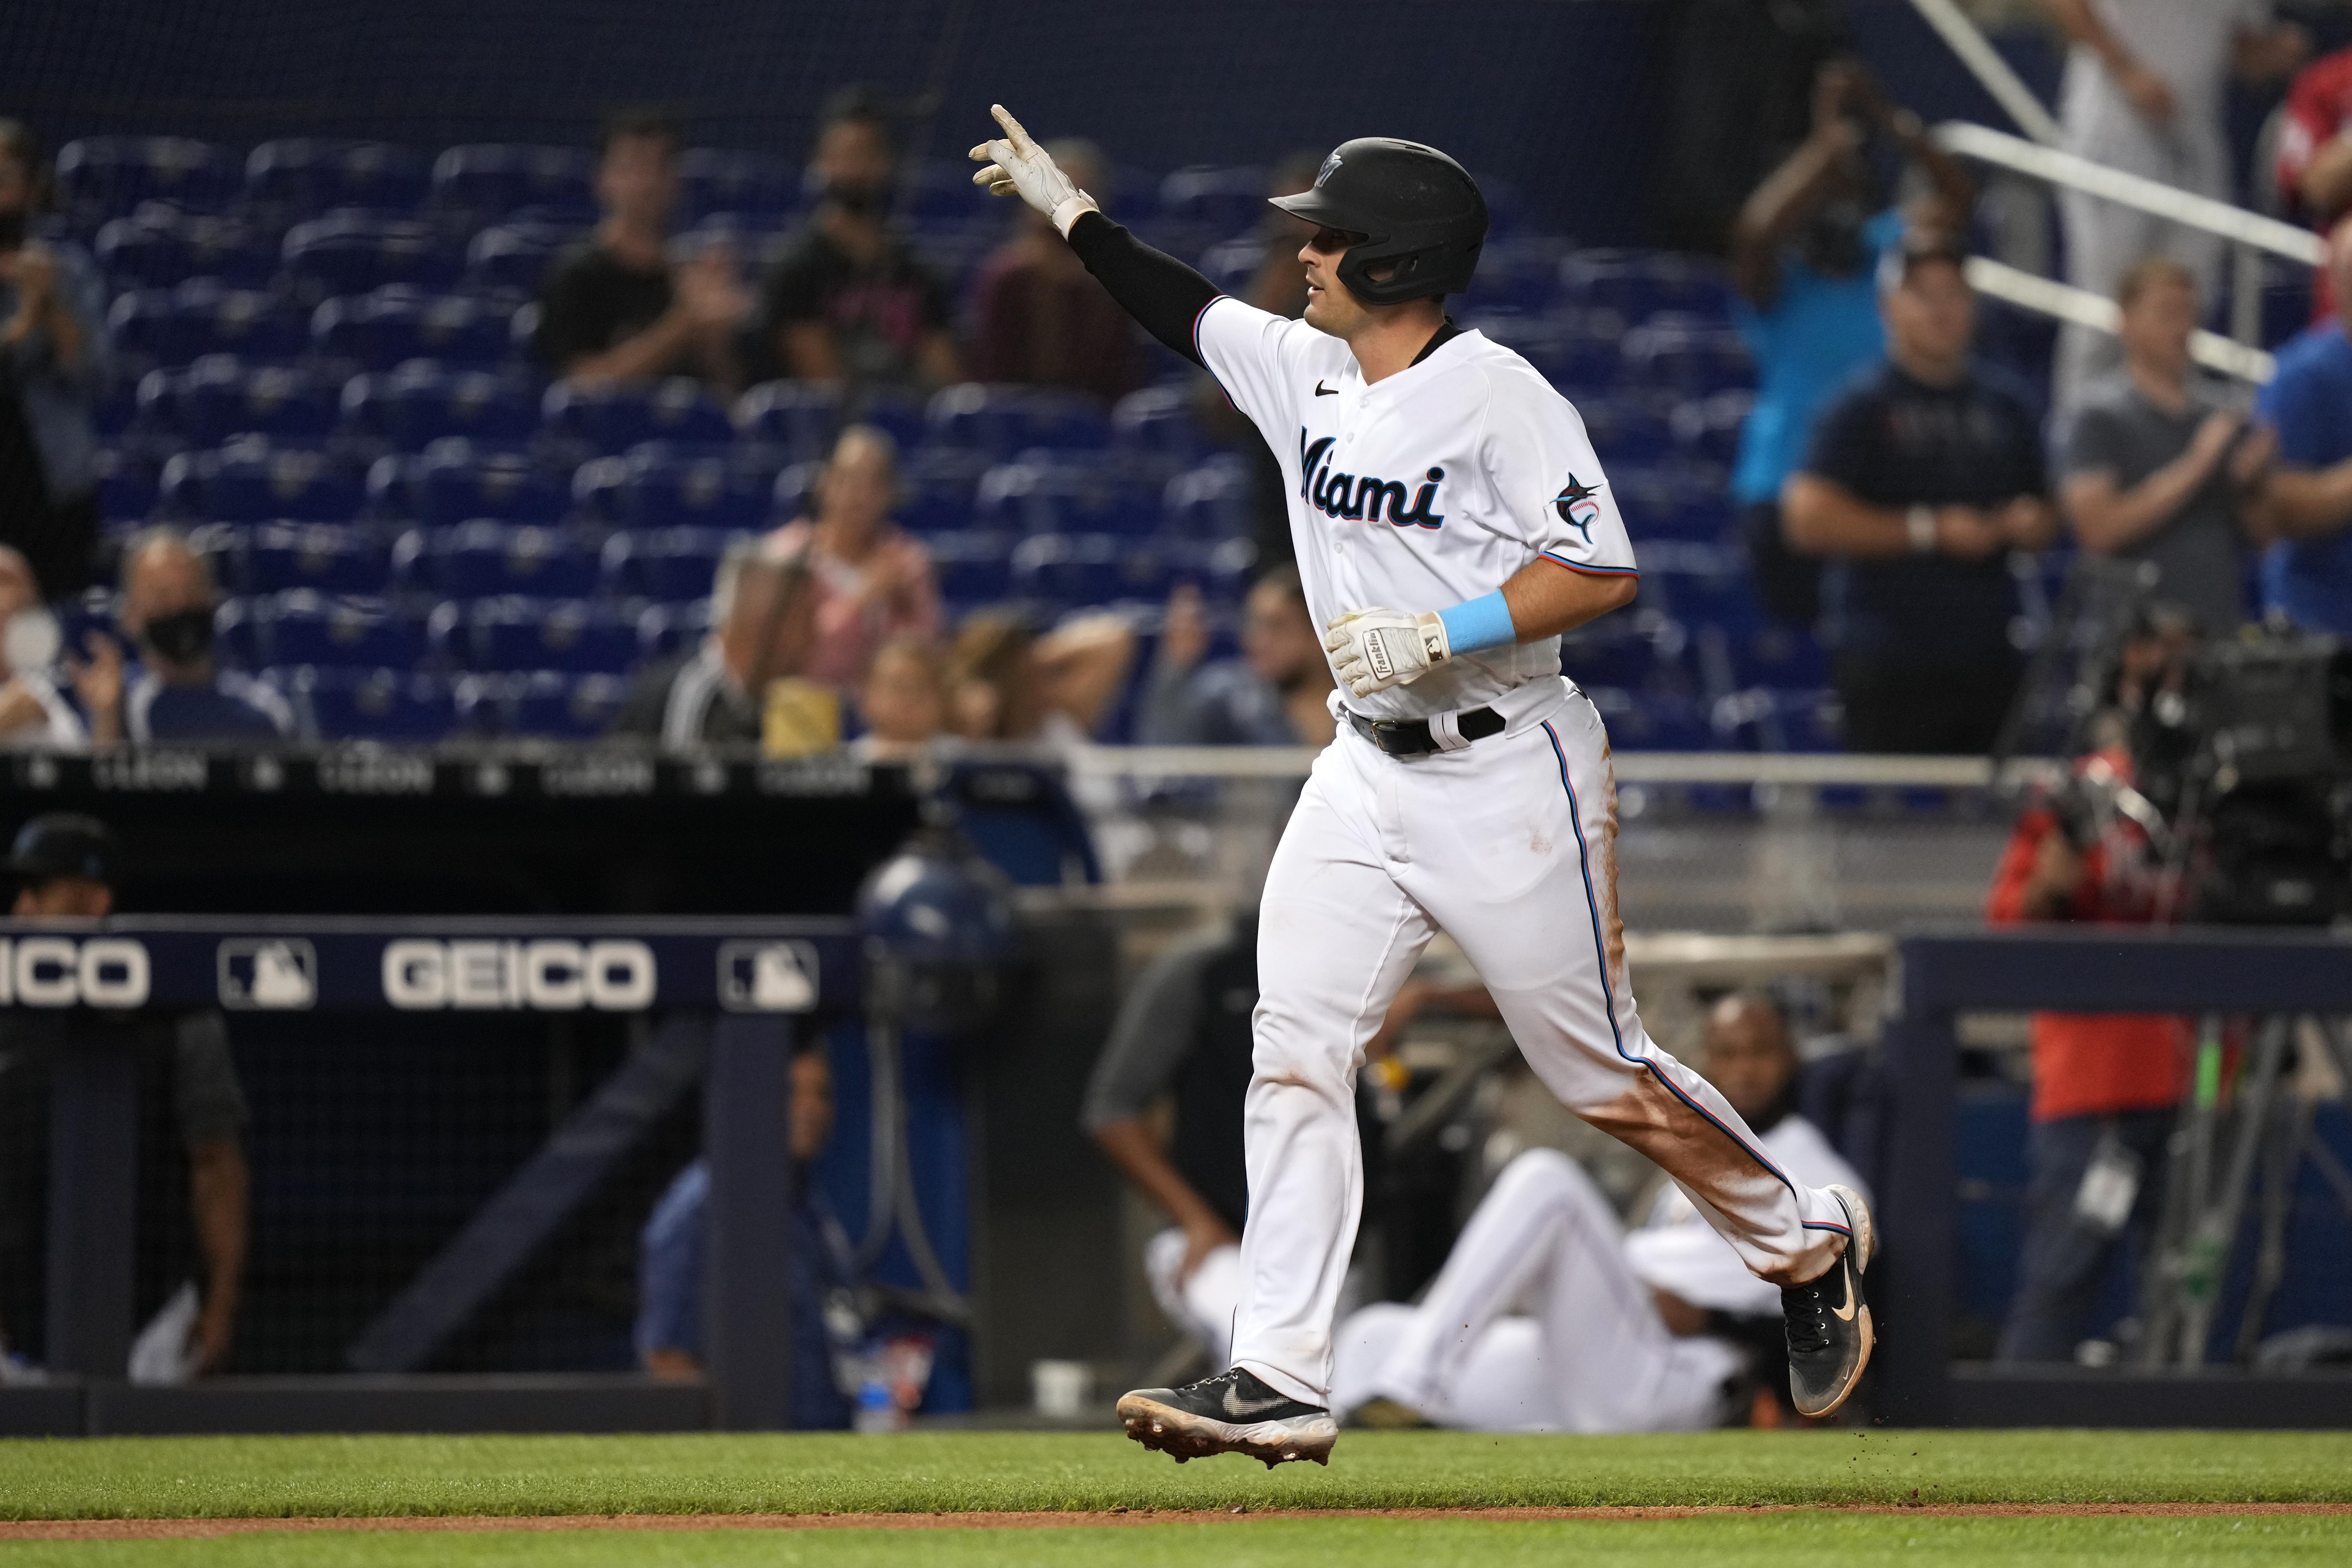 Miami Marlins catcher Nick Fortes (84) celebrates his solo home run while rounding the bases in the 5th inning against the Washington Nationals at loanDepot park